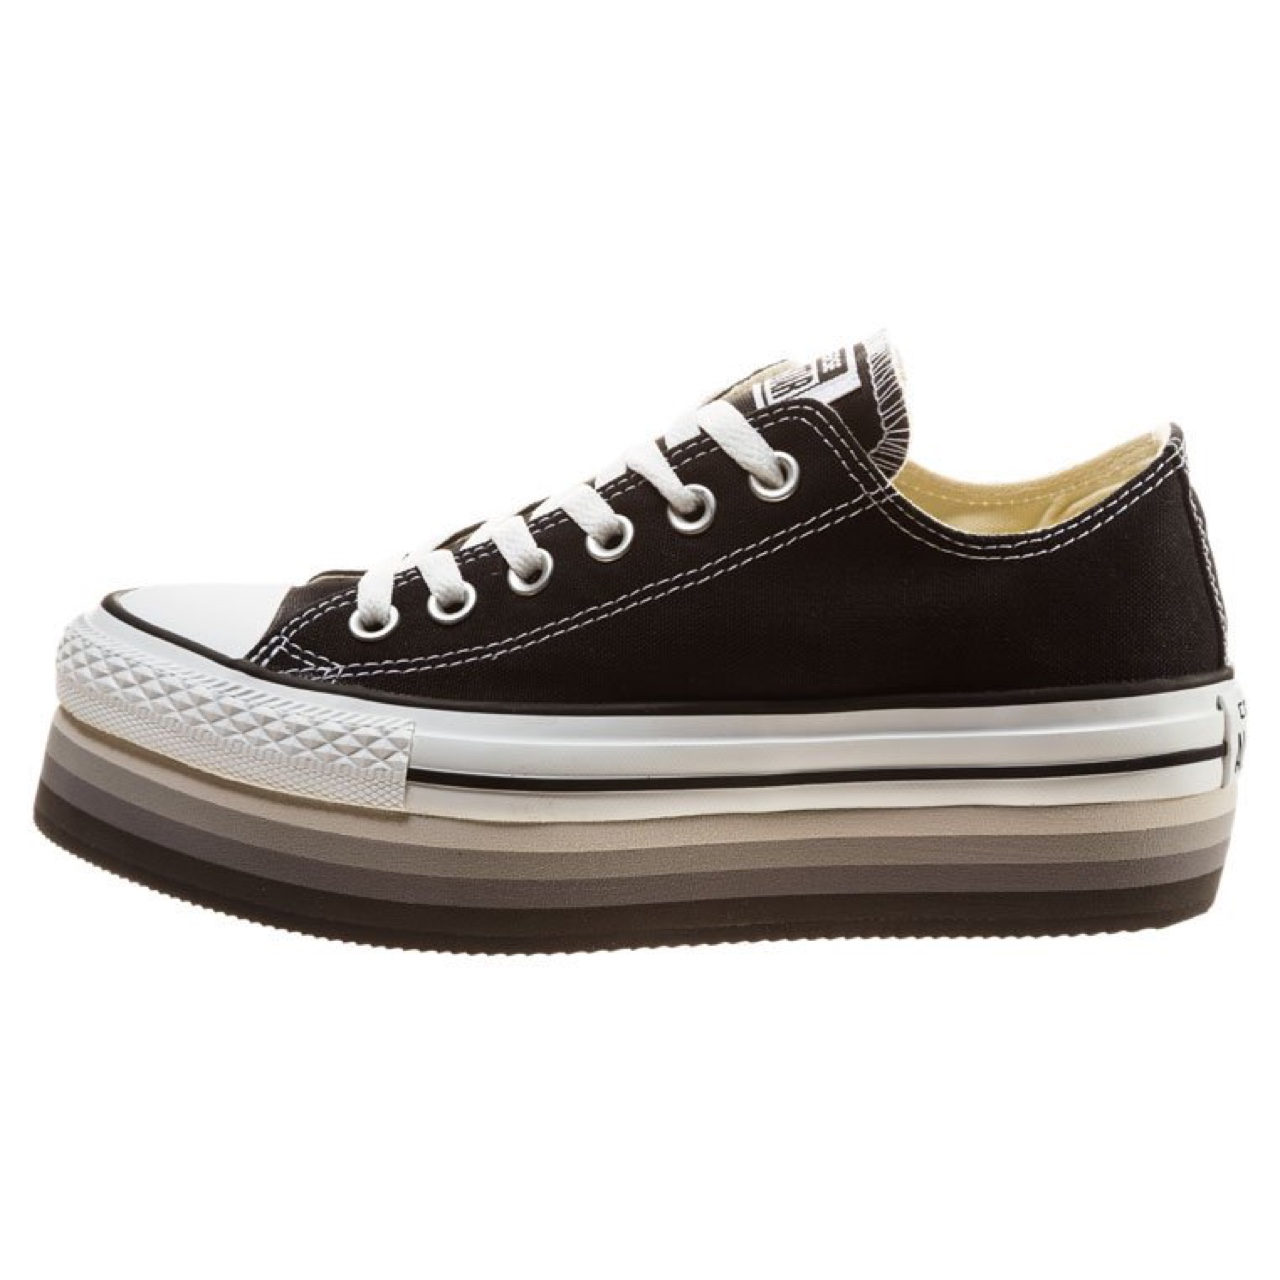 2converse canvas nere